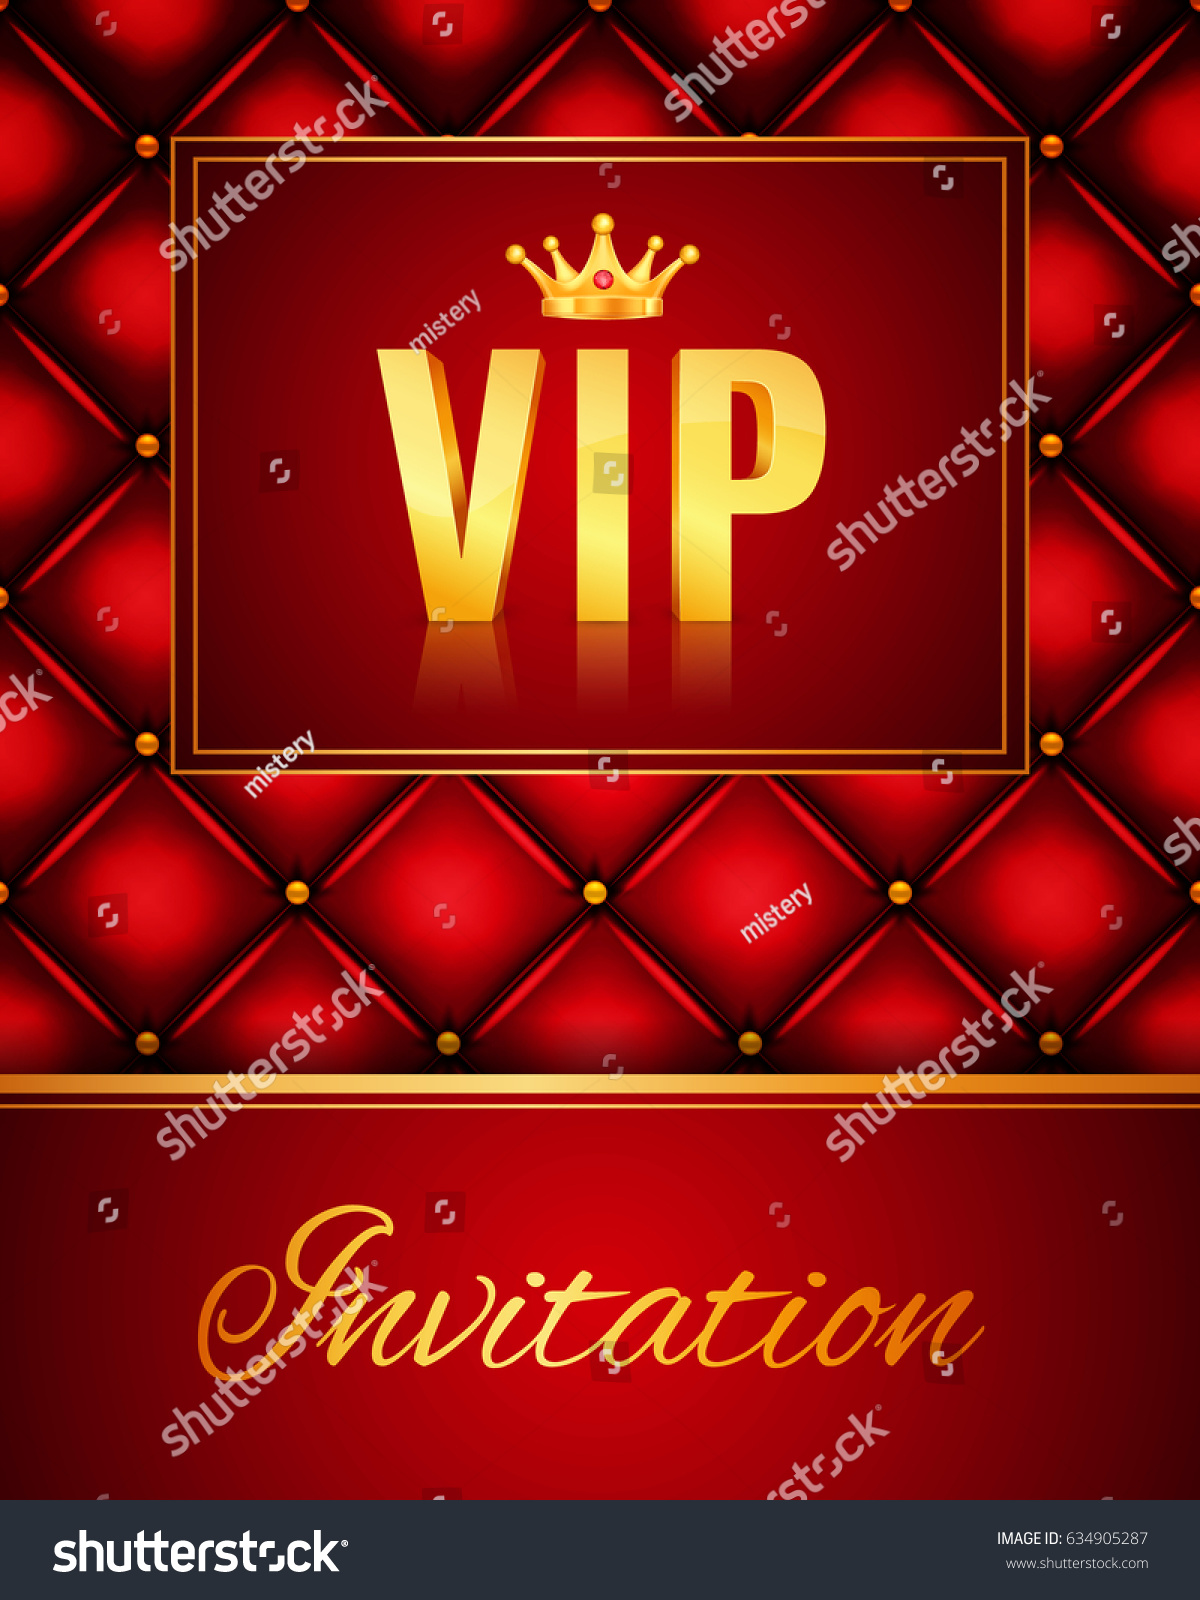 VIP Abstract Quilted Background Vip Party Stock Vector HD (Royalty ...